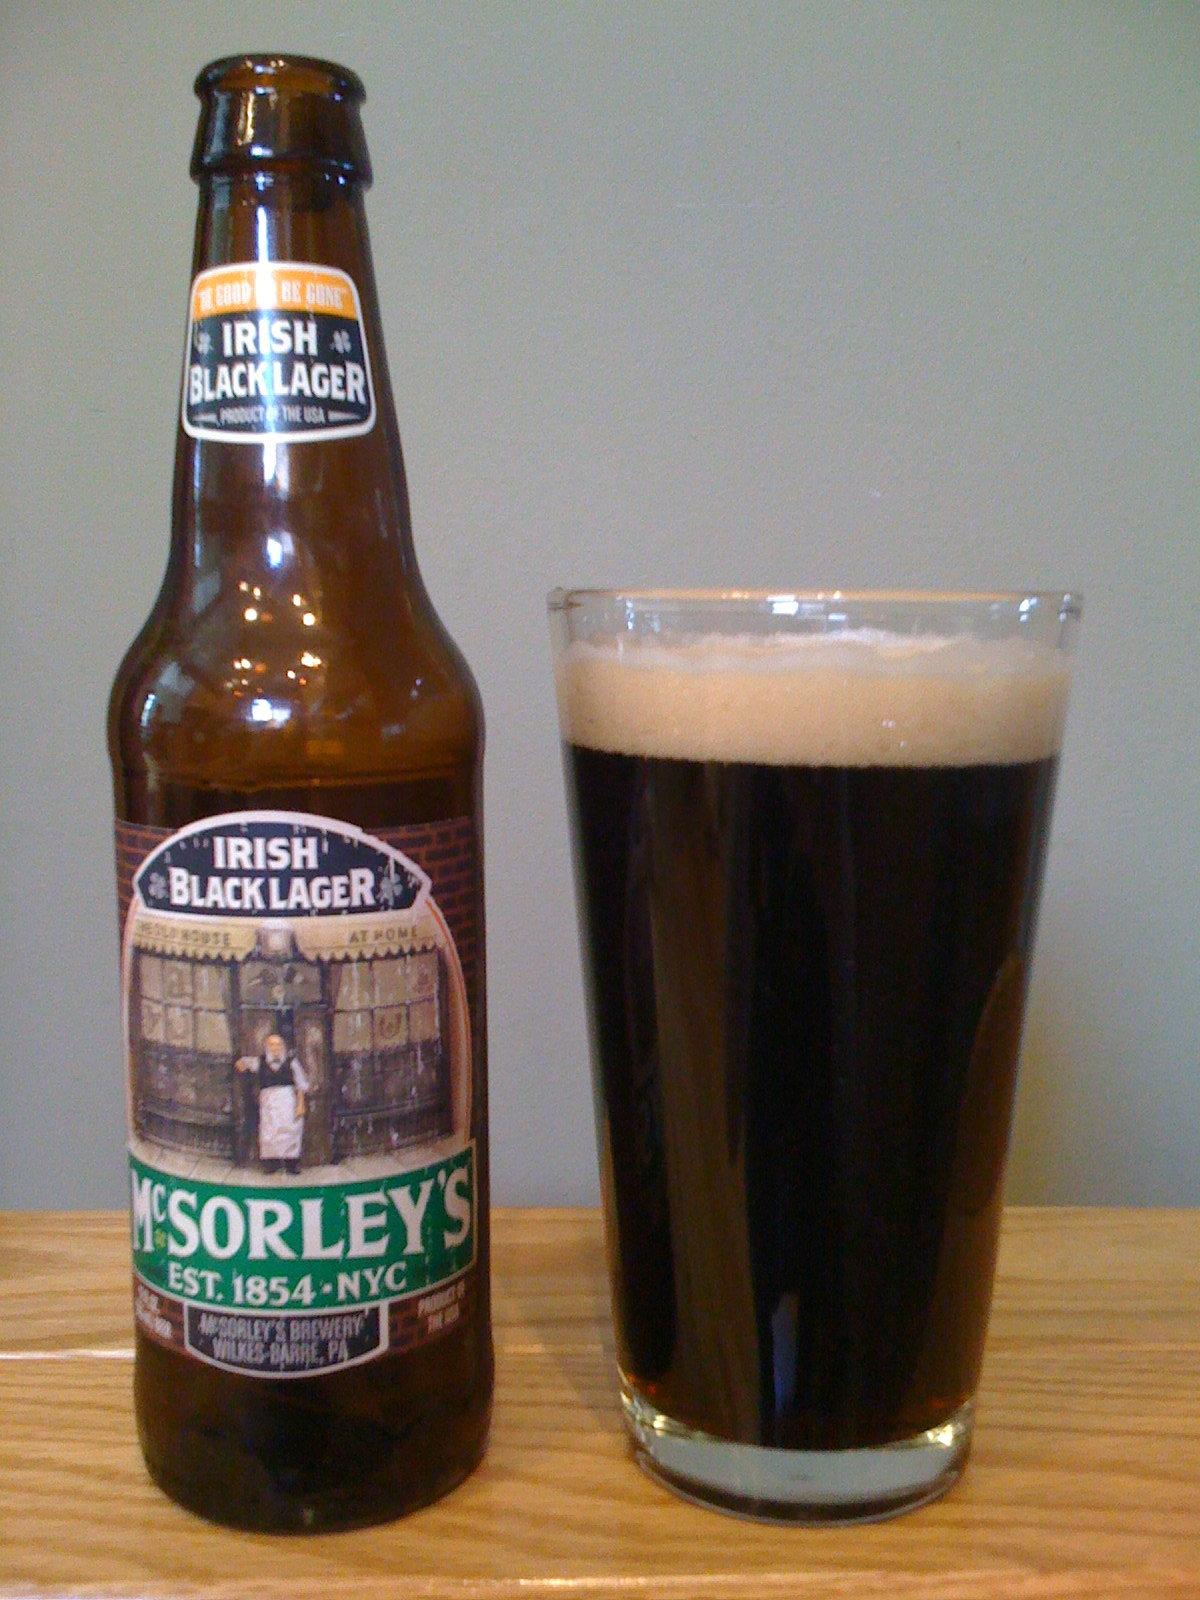 McSorley's Irish Black Lager